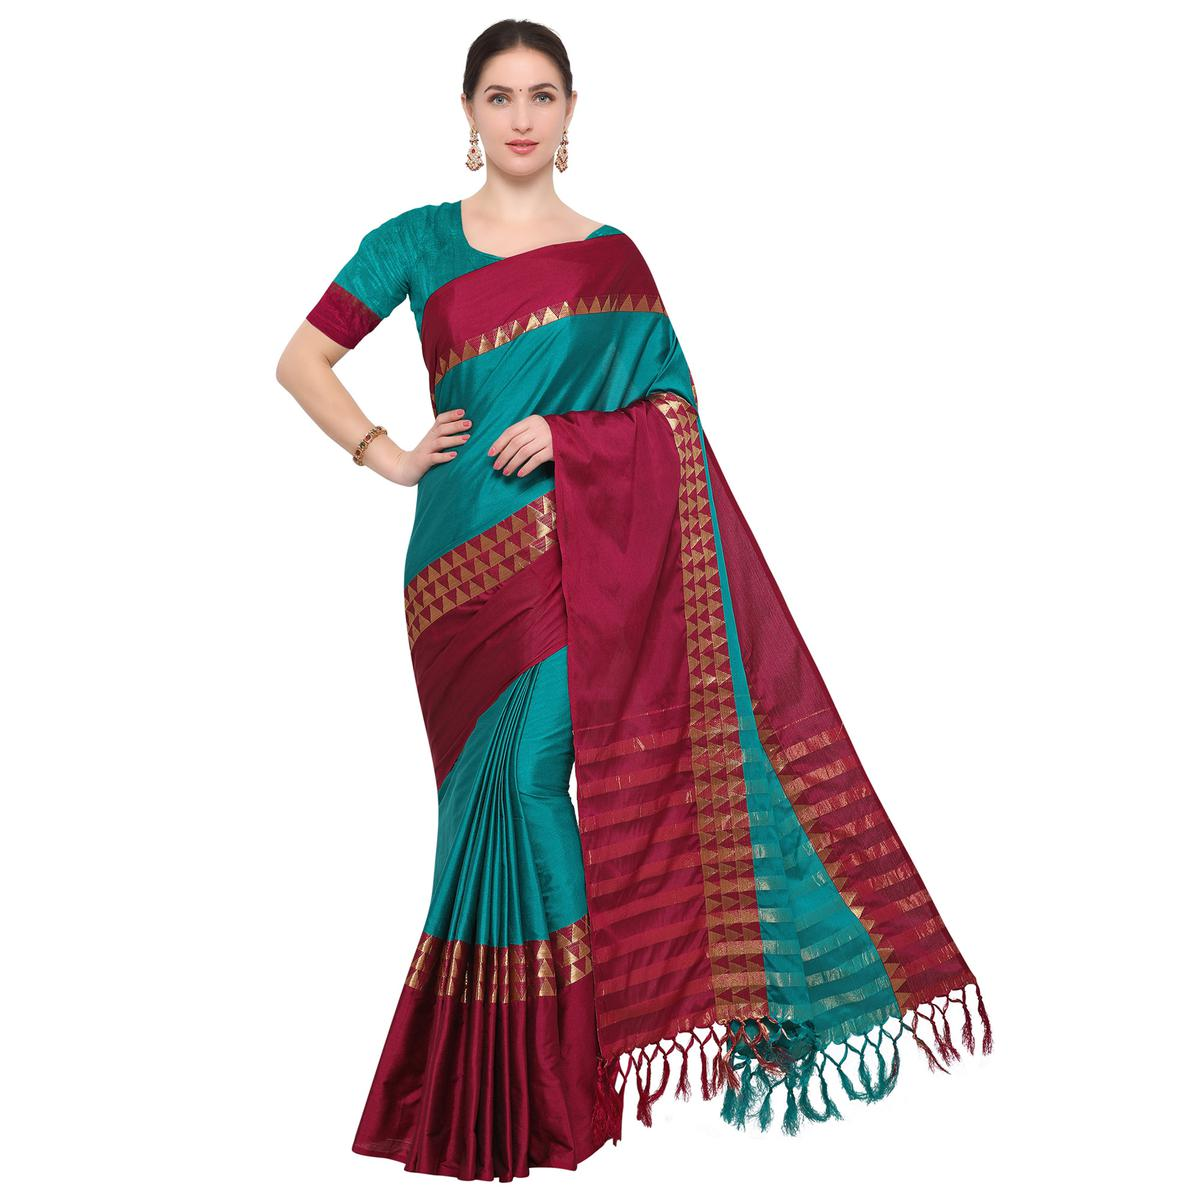 Turquoise Colored Festive Wear Cotton Blend Saree